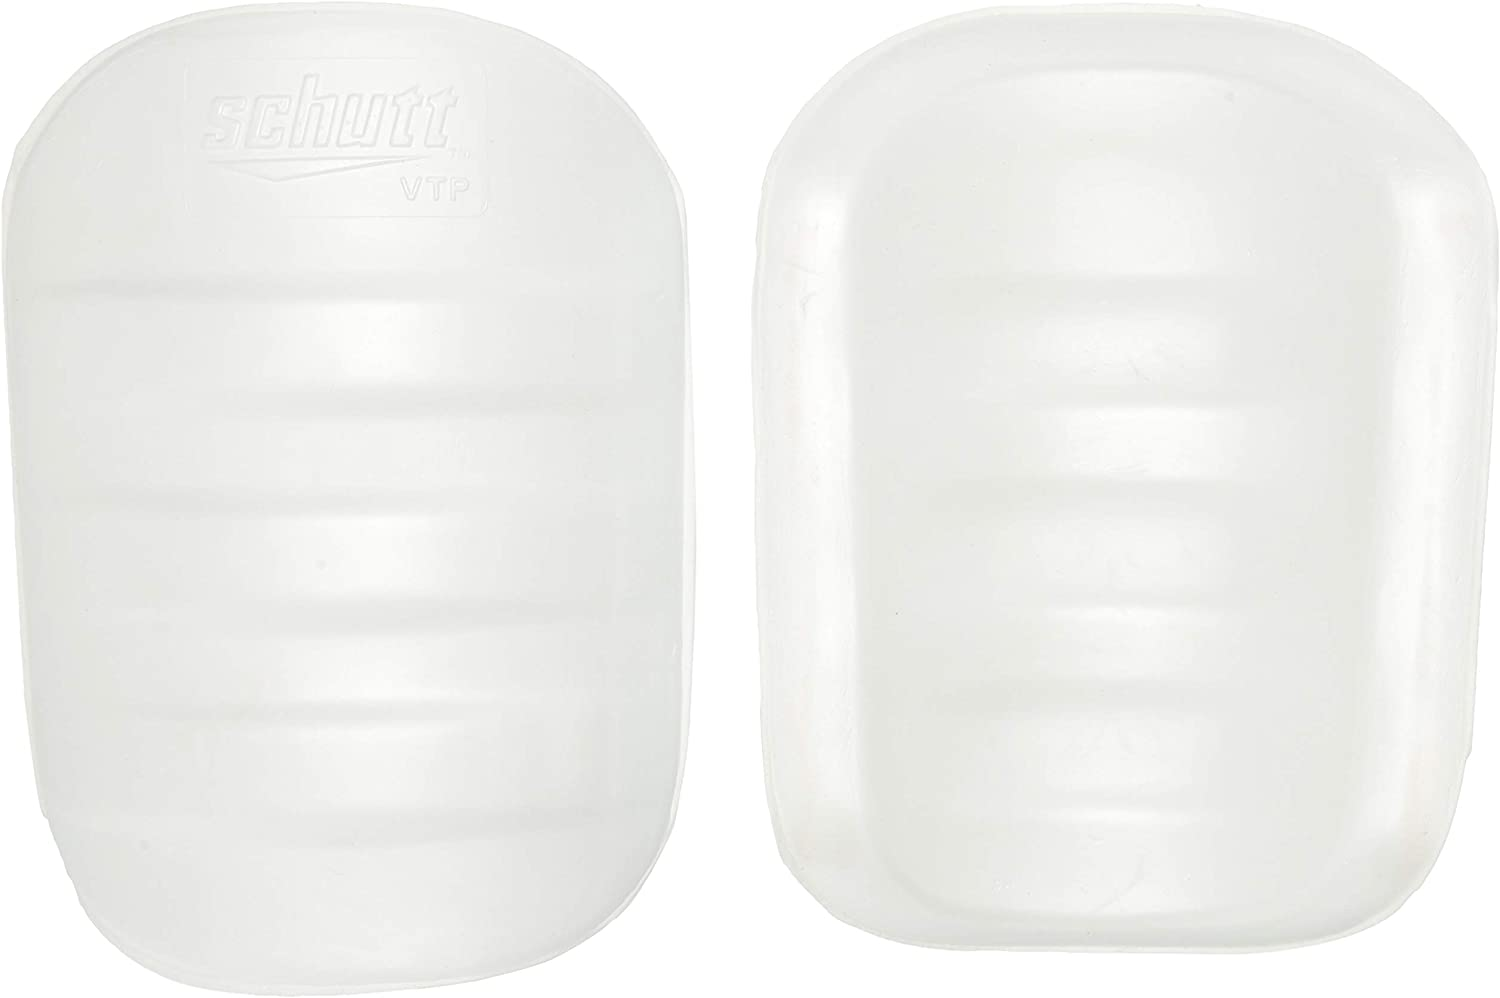 Schutt Varsity Lightweight Reinforced Thigh Pads - Universal : Football Thigh And Knee Pads : Sports & Outdoors